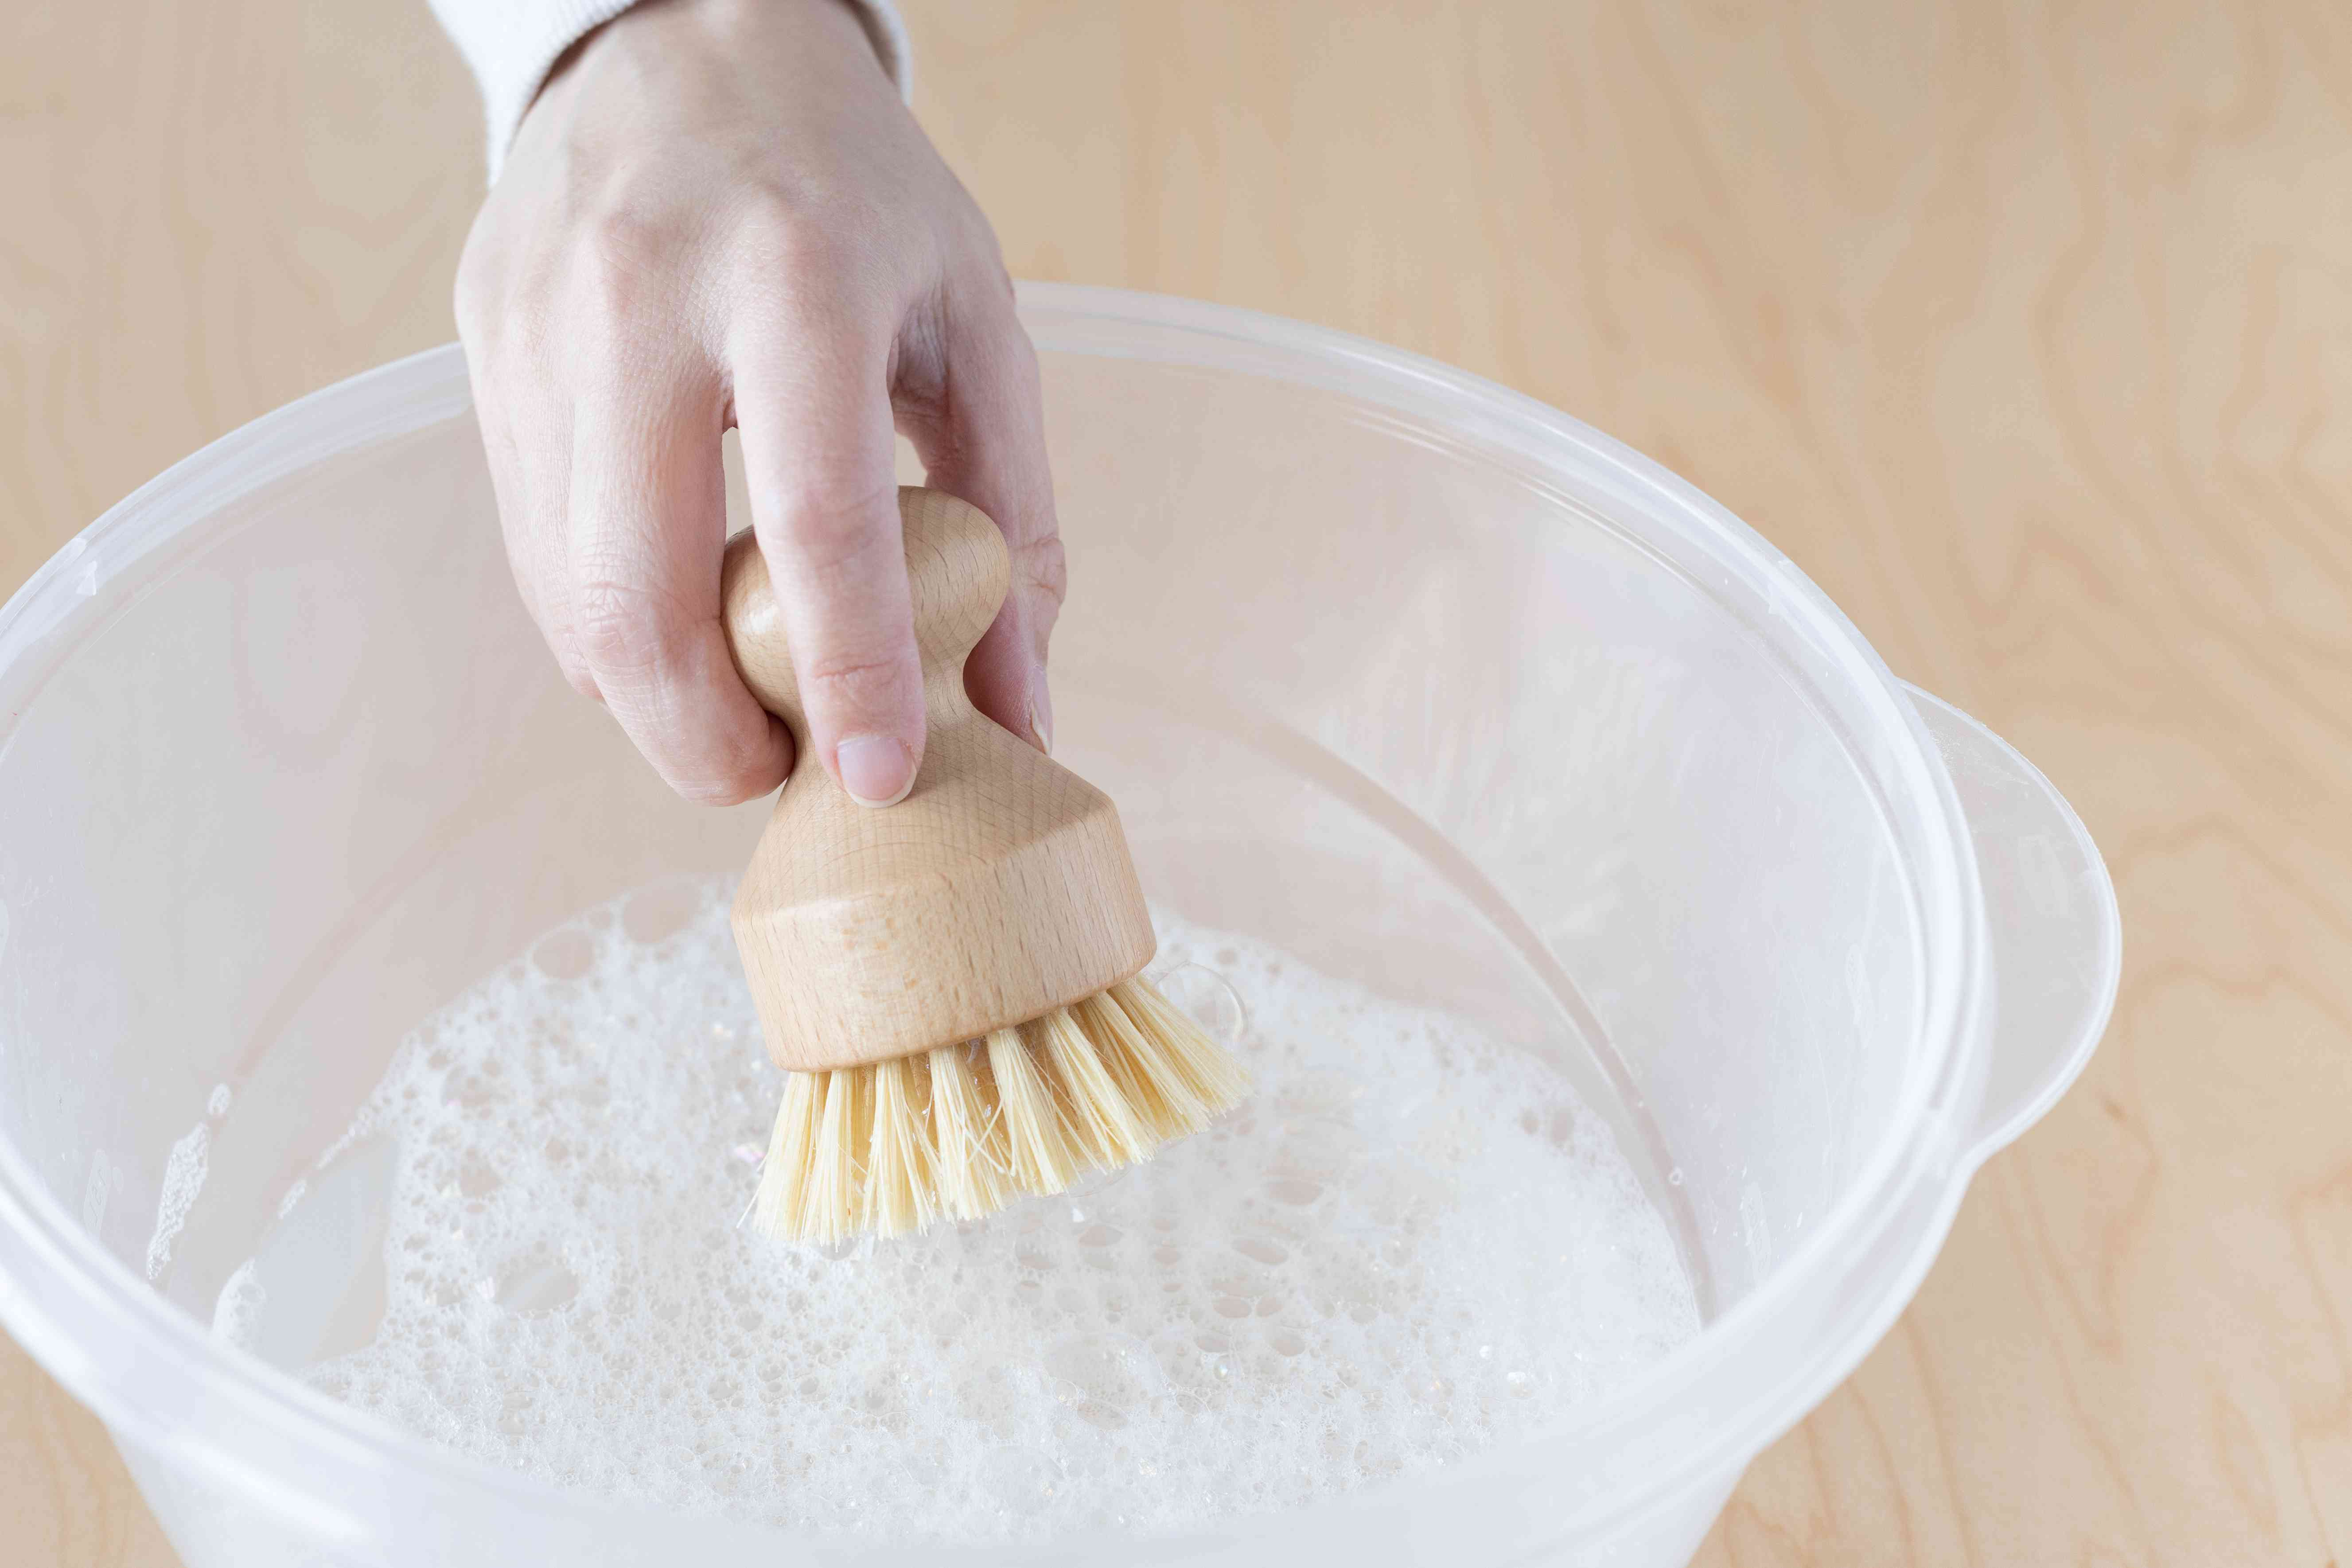 Soft bristled brush dipped into cleaning solution